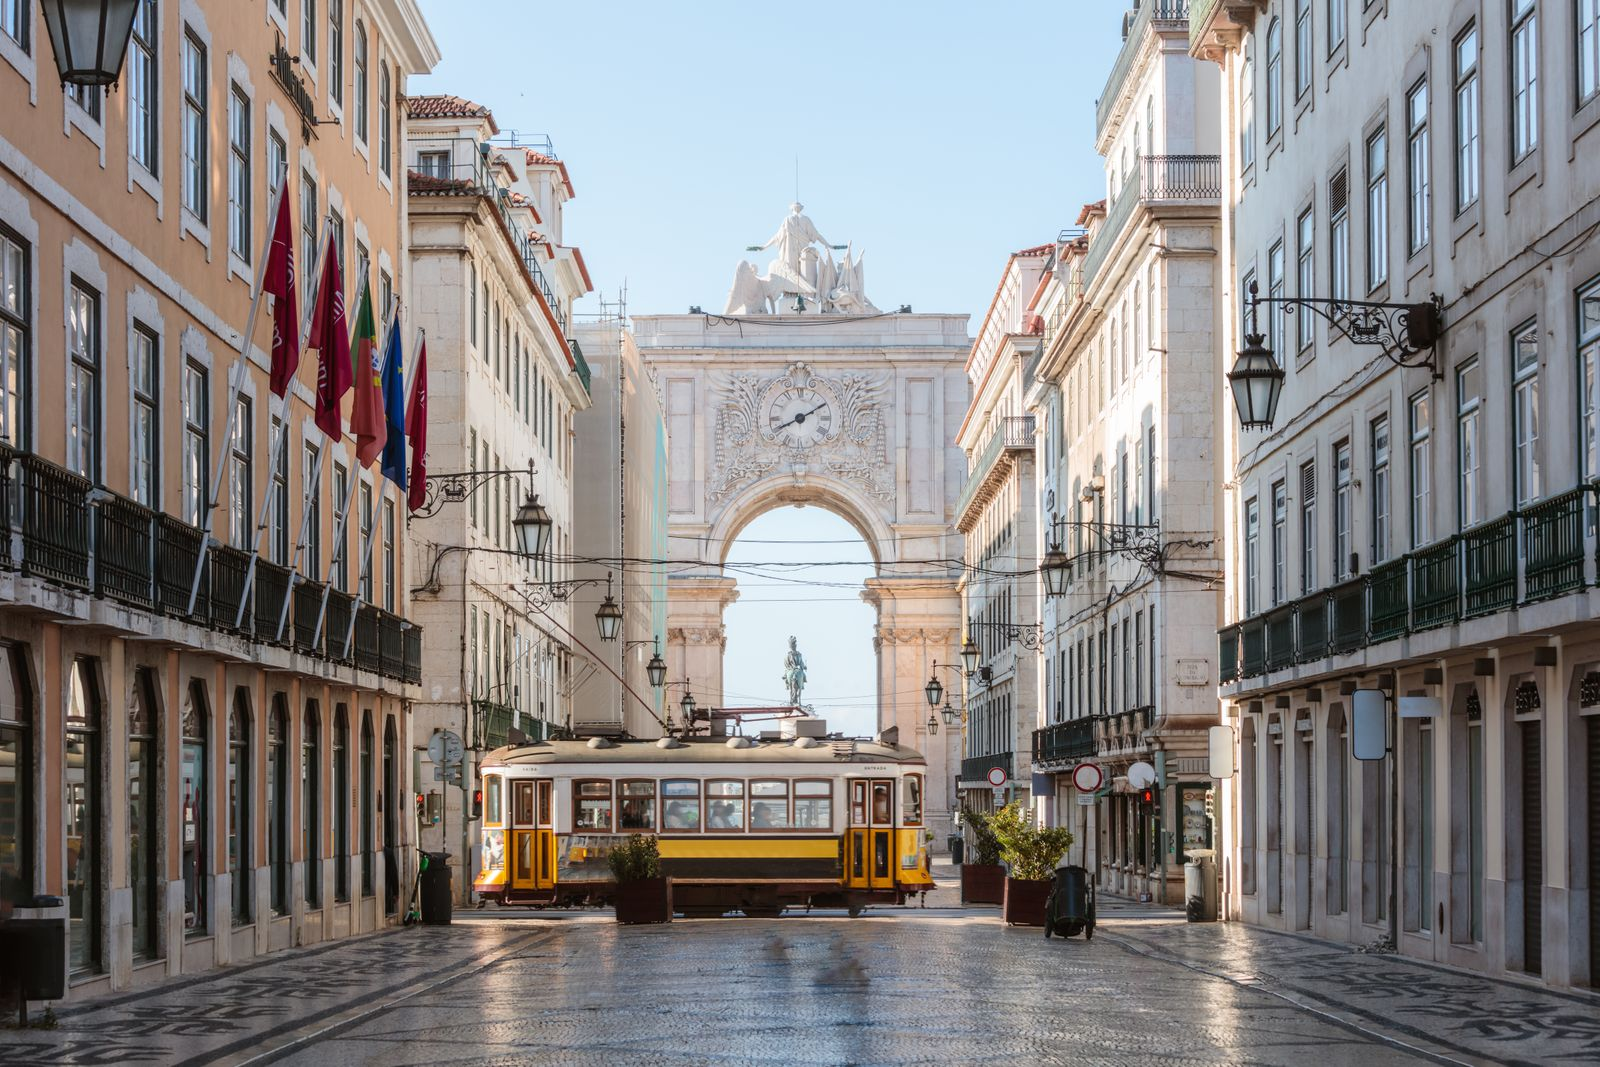 Tram in front of Rua Augusta arch, Lisbon, Portugal